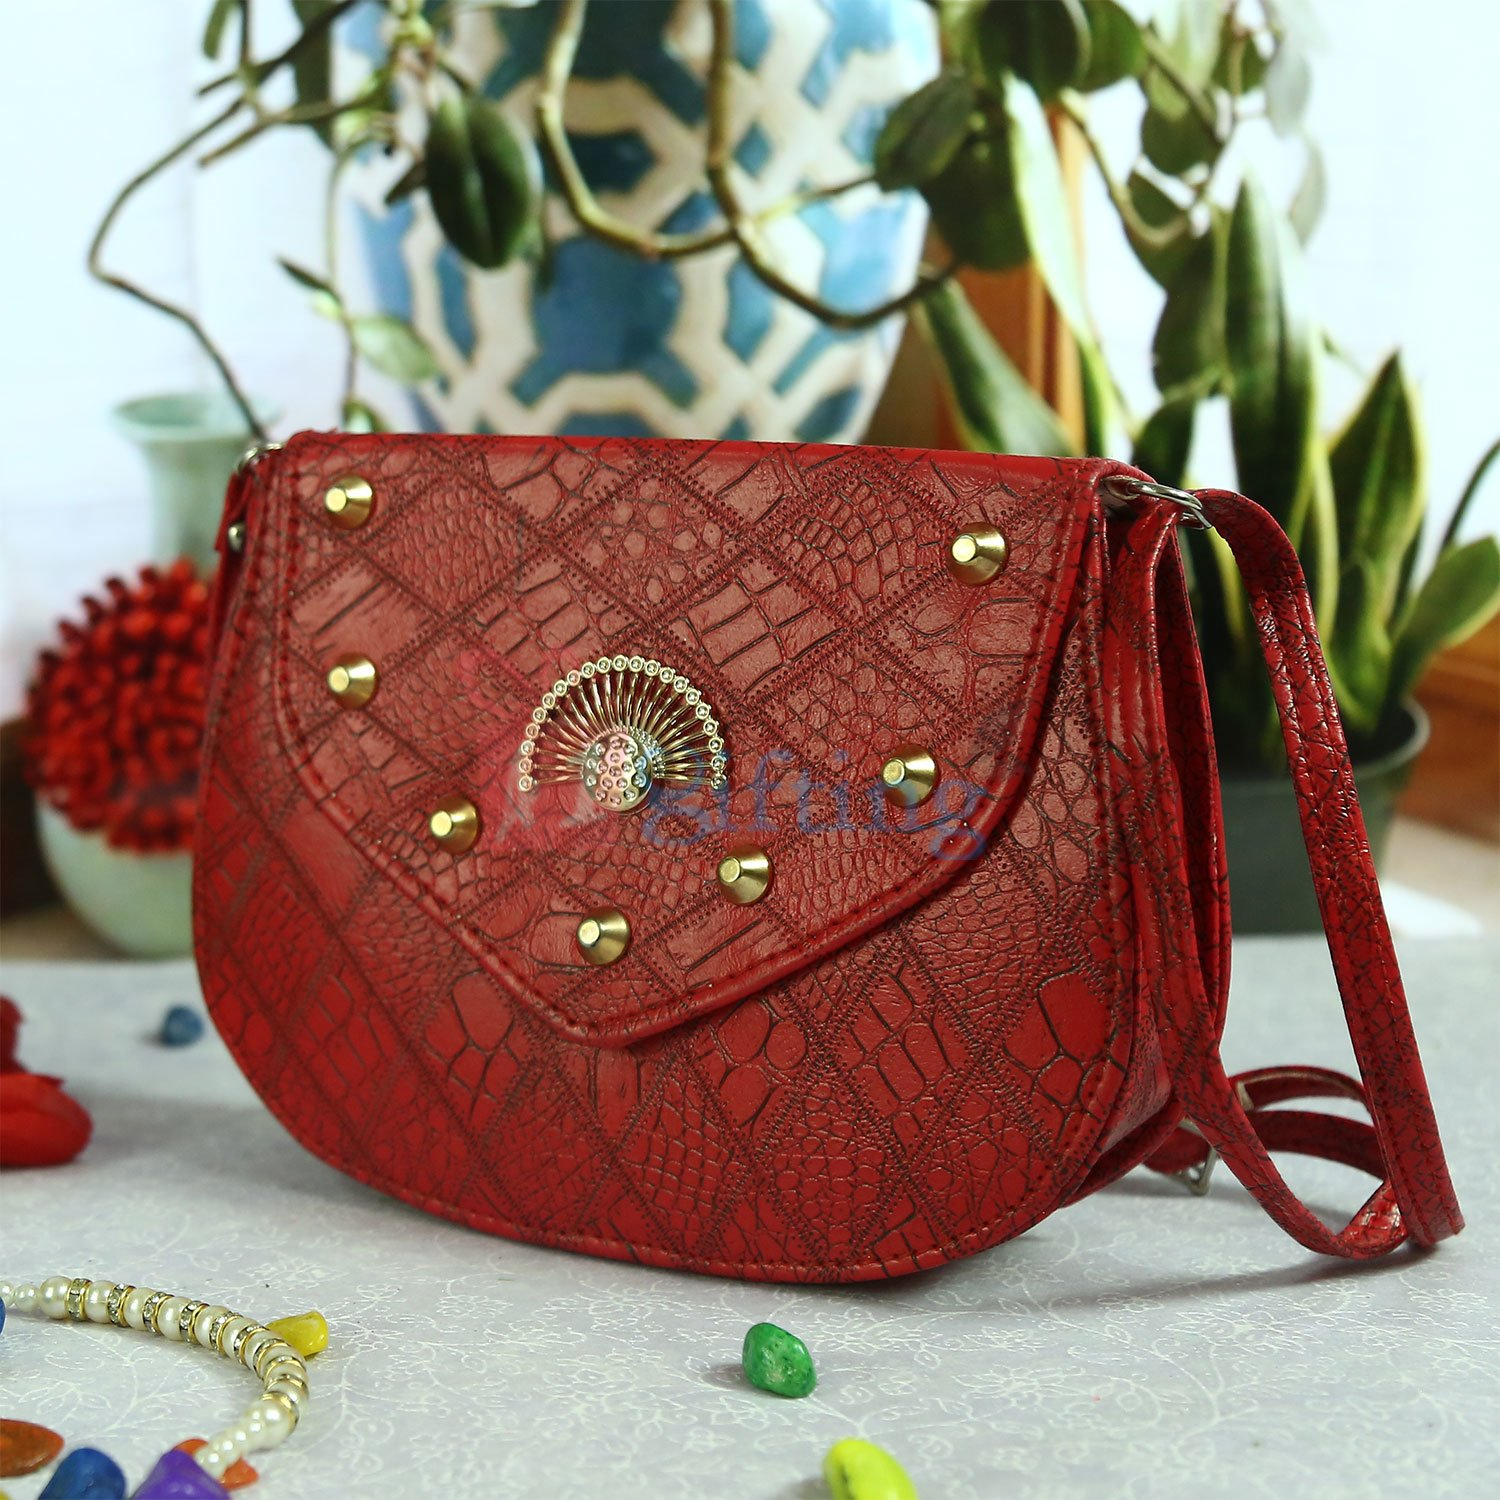 Simply Great Handbag for Her